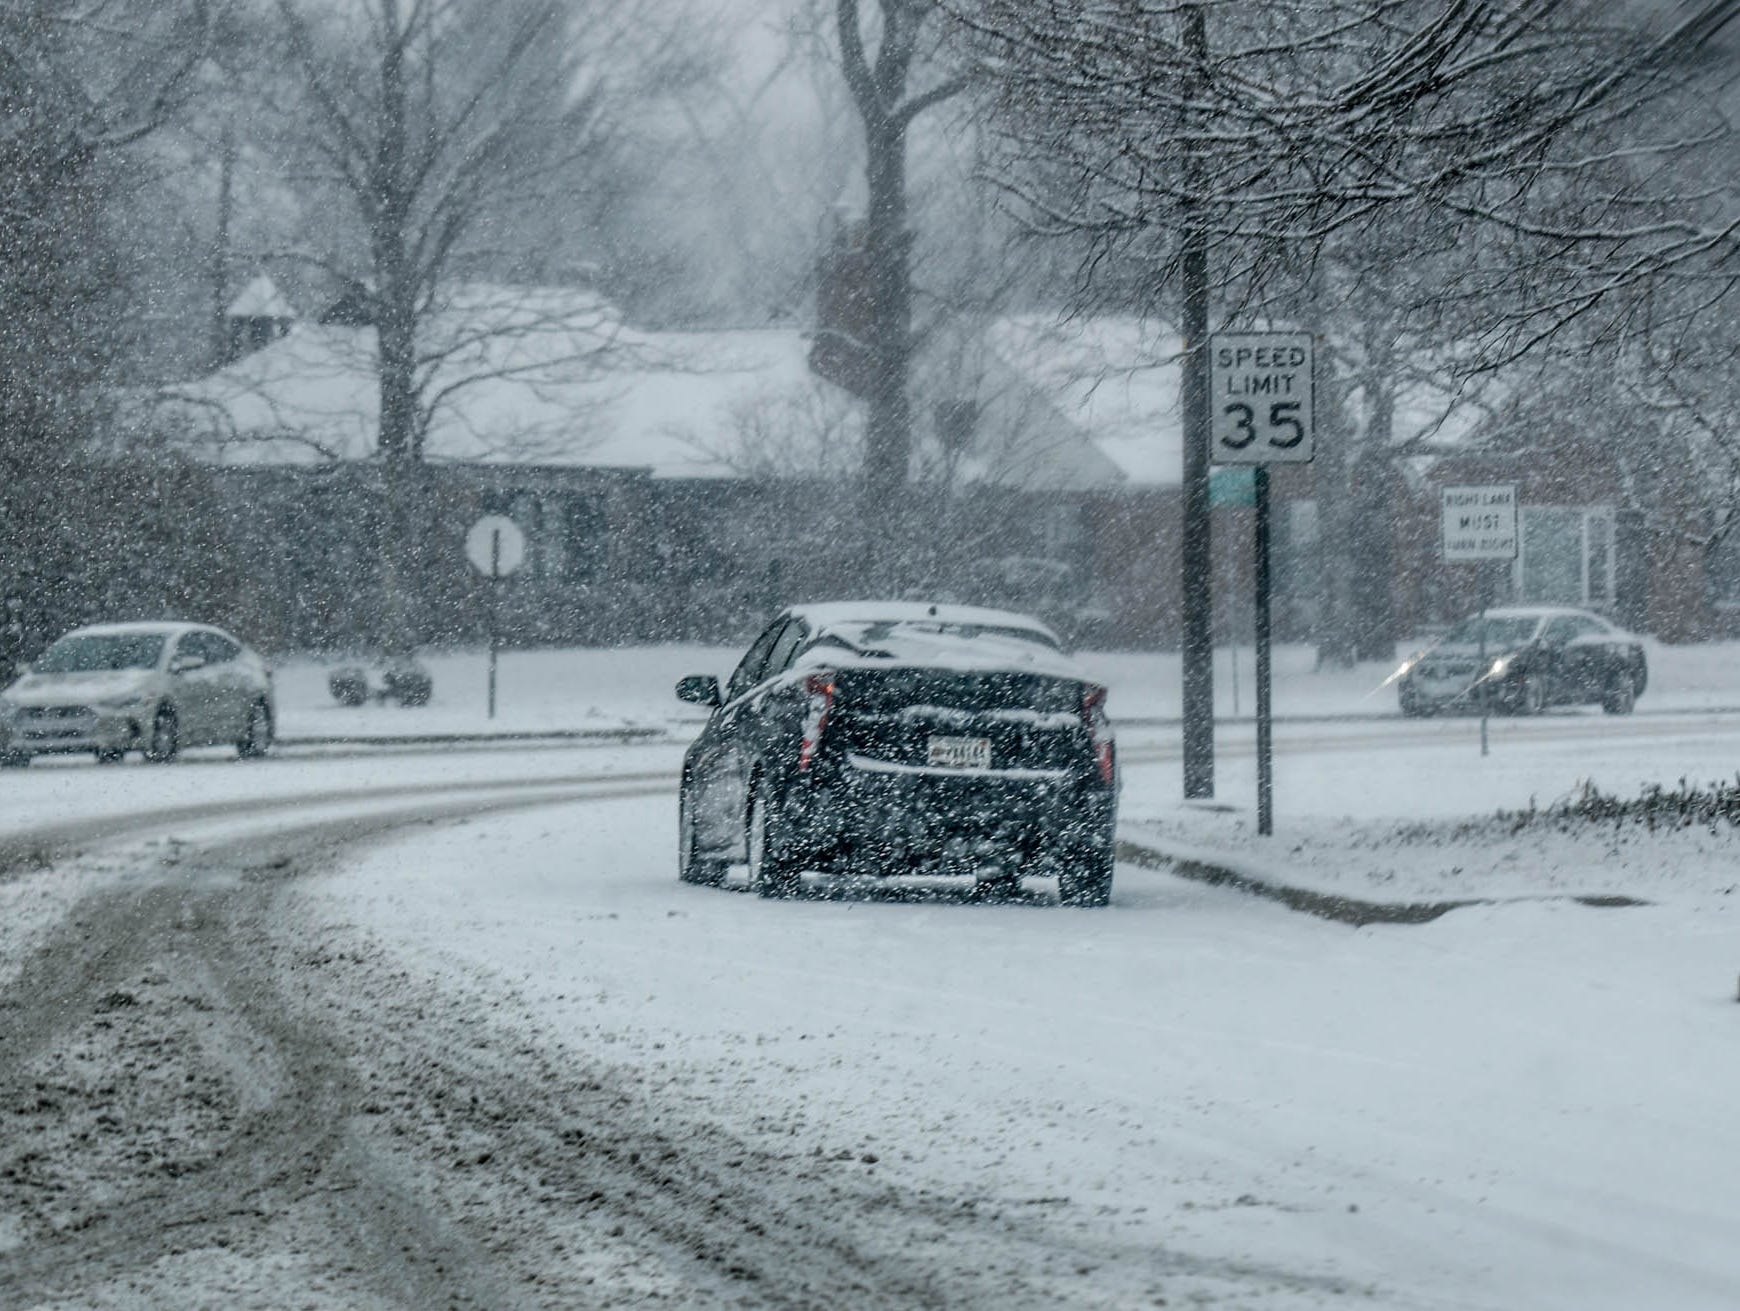 A Prius stalls along Kessler Blvd. W. Dr. as now falls in Indianapolis on Sunday, Feb. 10, 2019.